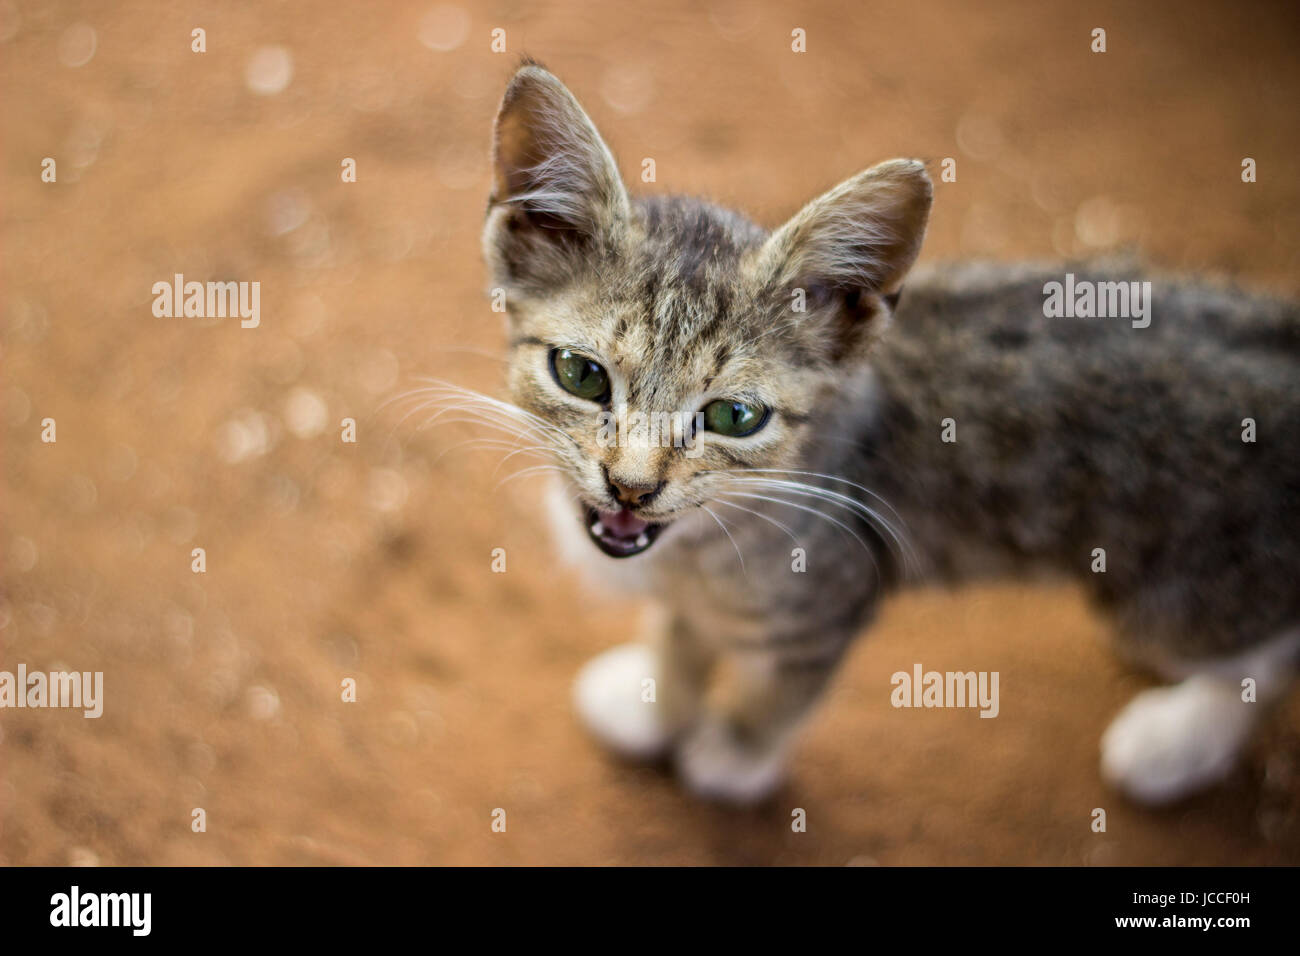 Photograph of a stray kitten mewing in Kenya, Africa. - Stock Image